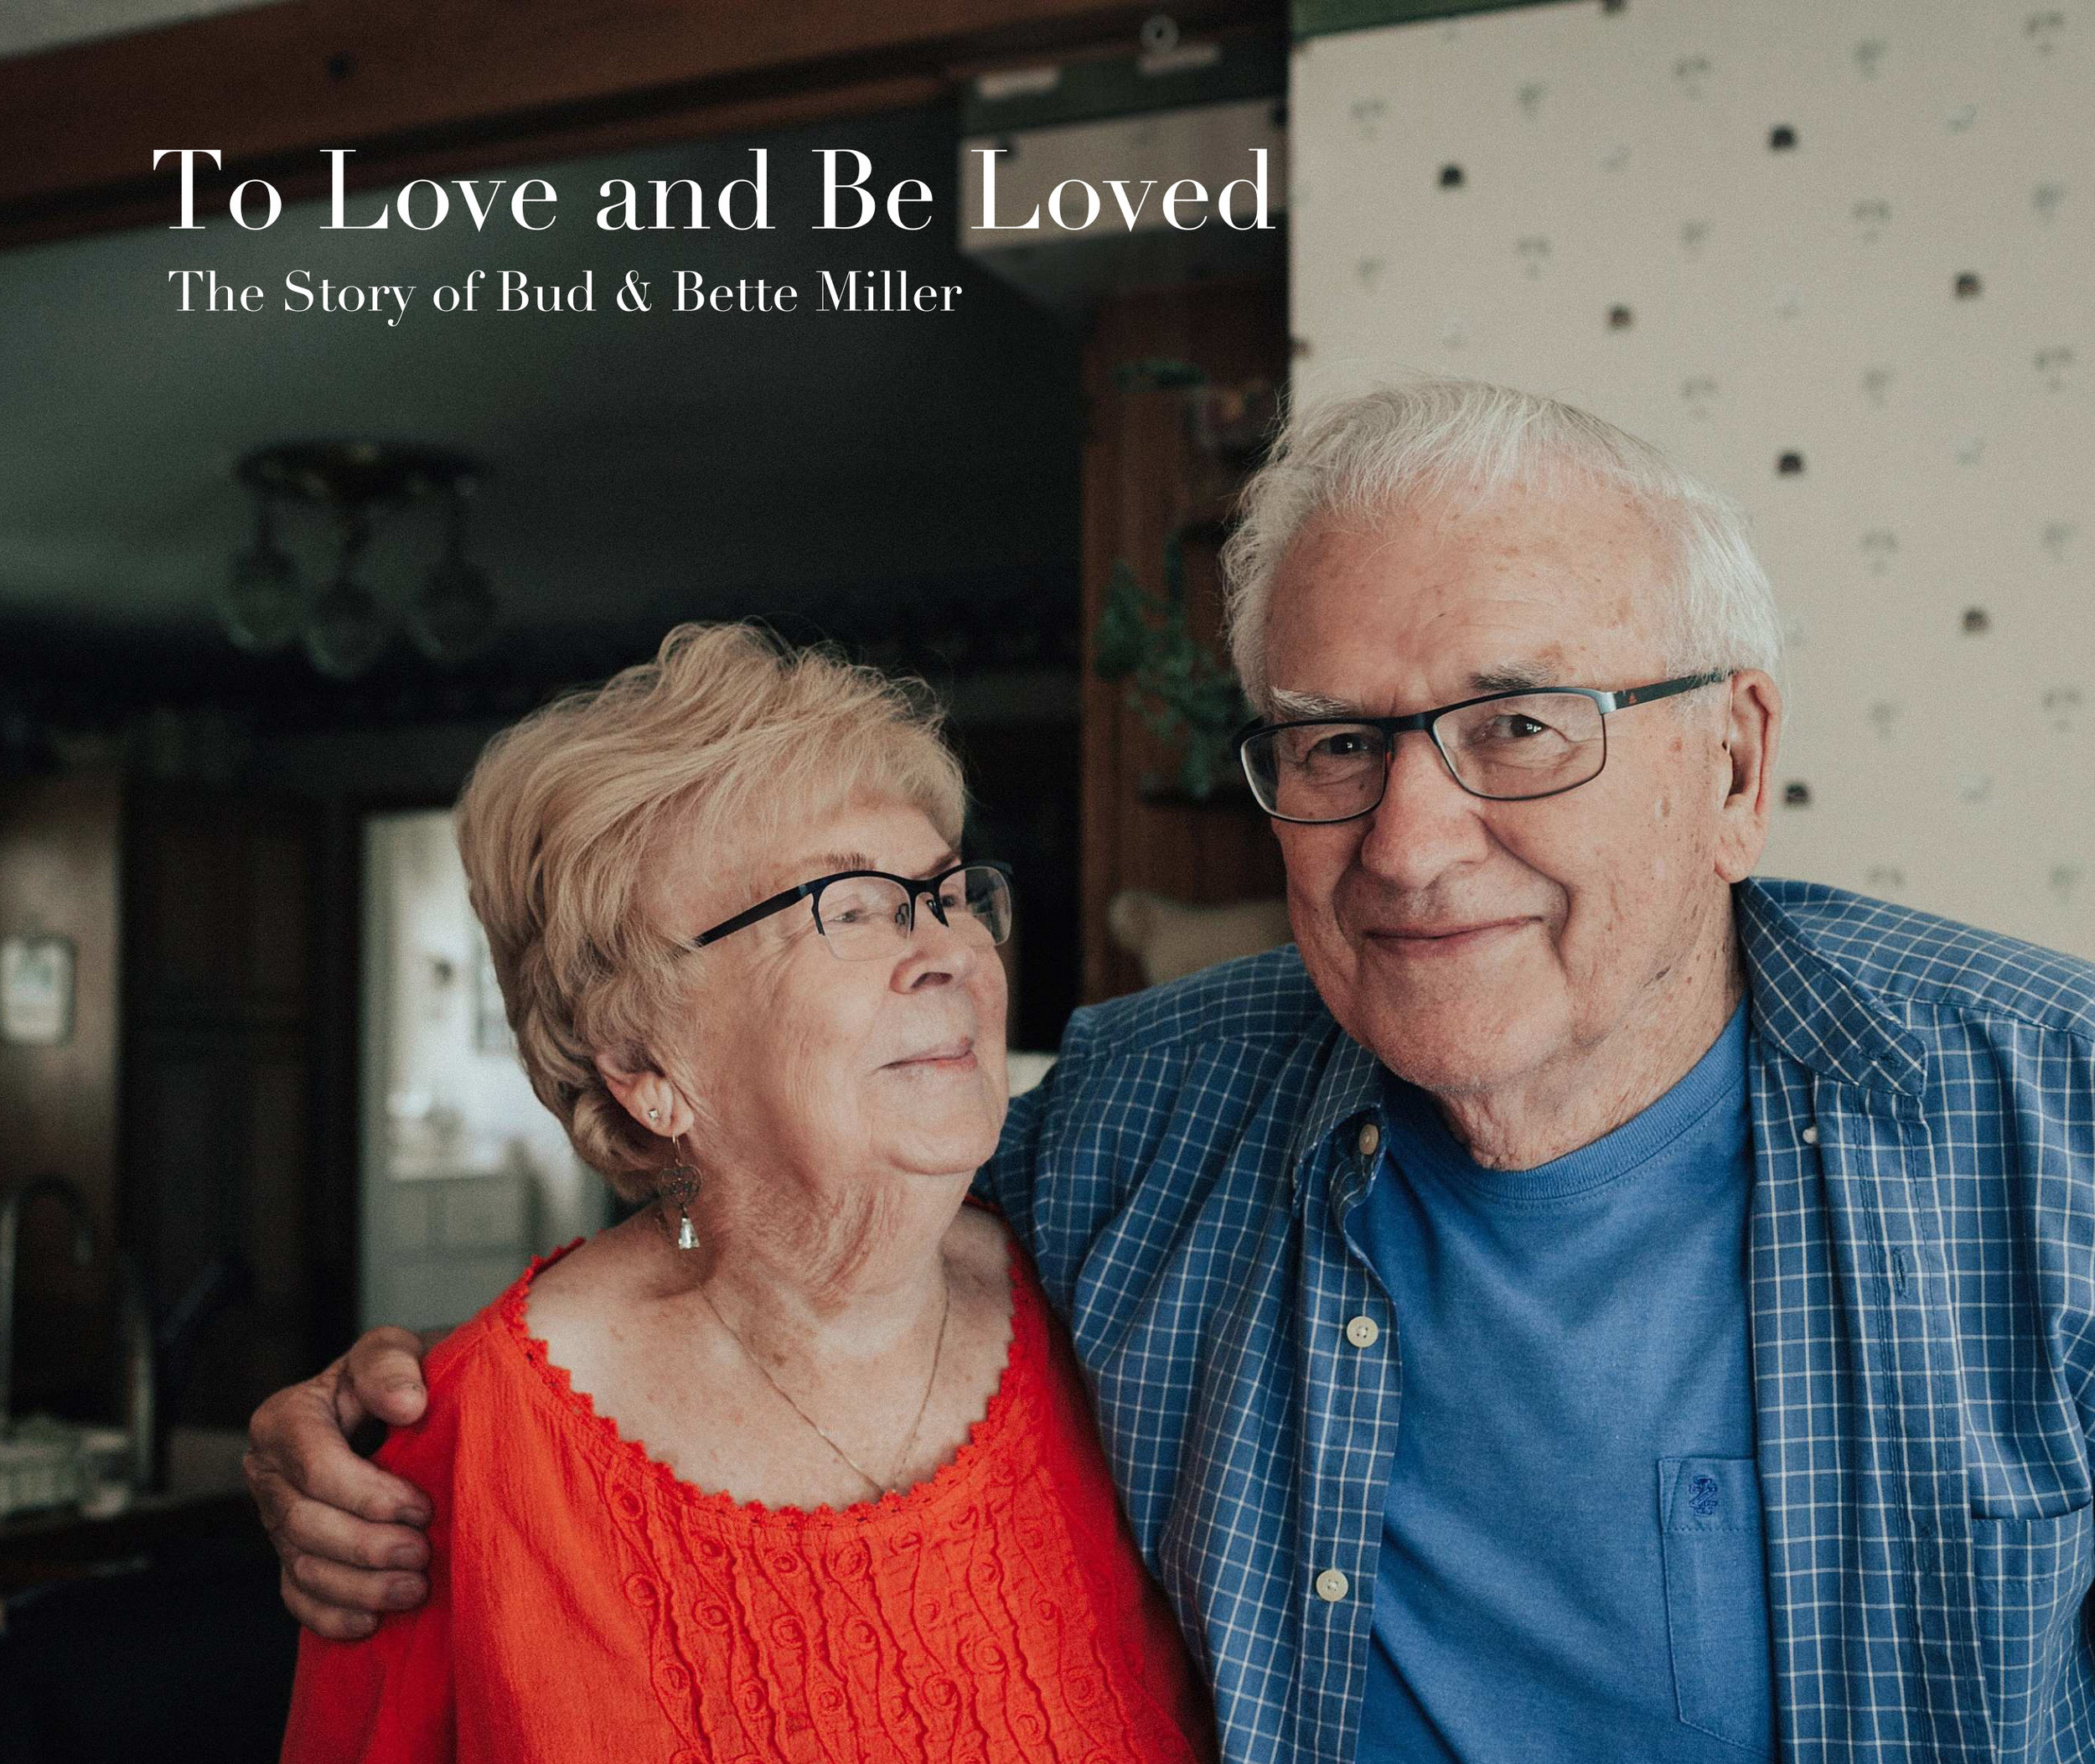 To Love and Be Loved- The Story of Bud & Bette Miller-1.jpg